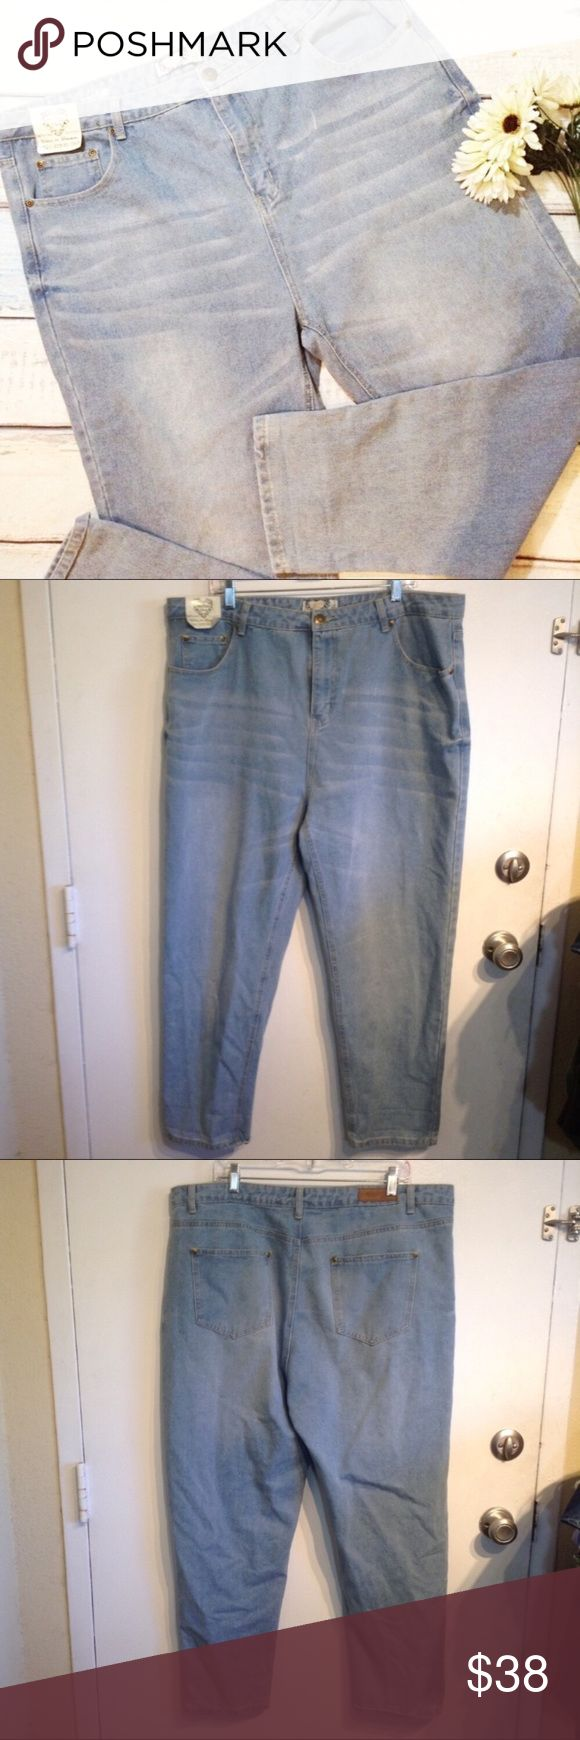 """NWT BOOHOO Plus Size High Waisted Skinny Jeans New with tag. Boohoo plus size light wash high waisted skinny fit jeans. Great basic staple item. Has stretch. UK22/US size 18. Measures 20.5"""" flat at waist, 14"""" front rise, and 28.5"""" inseam. No modeling. Smoke free home. I do discount bundles. Boohoo Jeans Skinny"""